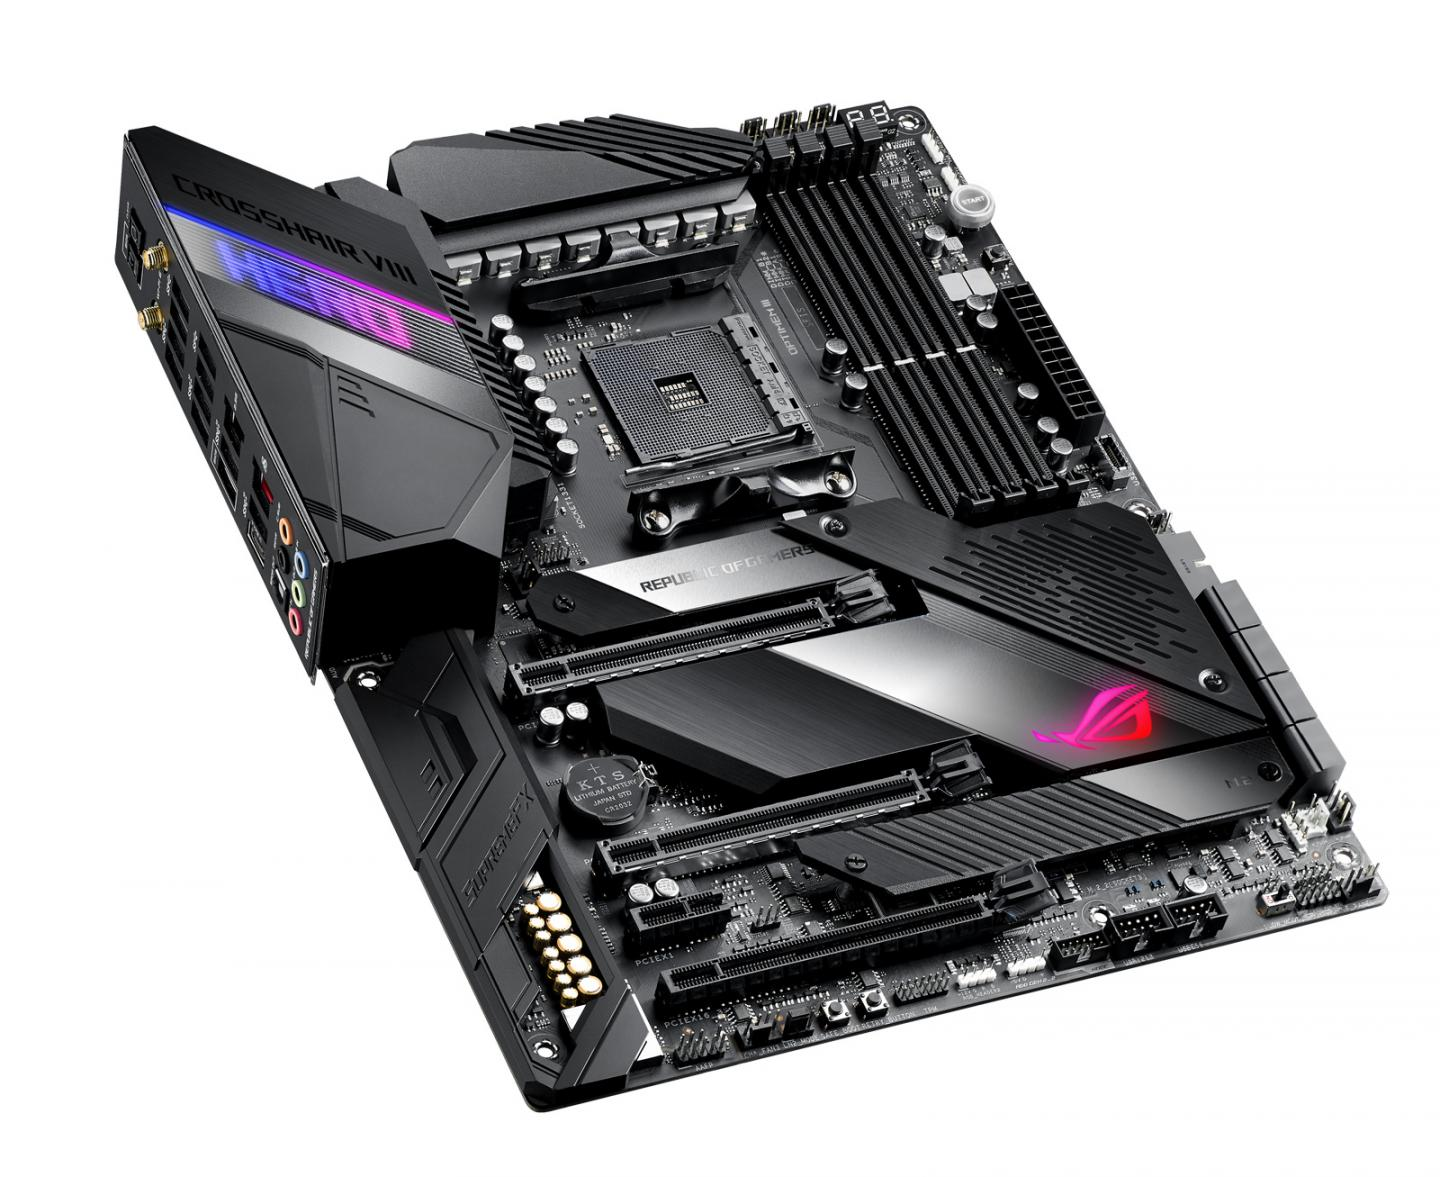 ASUS Announces AMD X570 Series Motherboards (ITX as well)